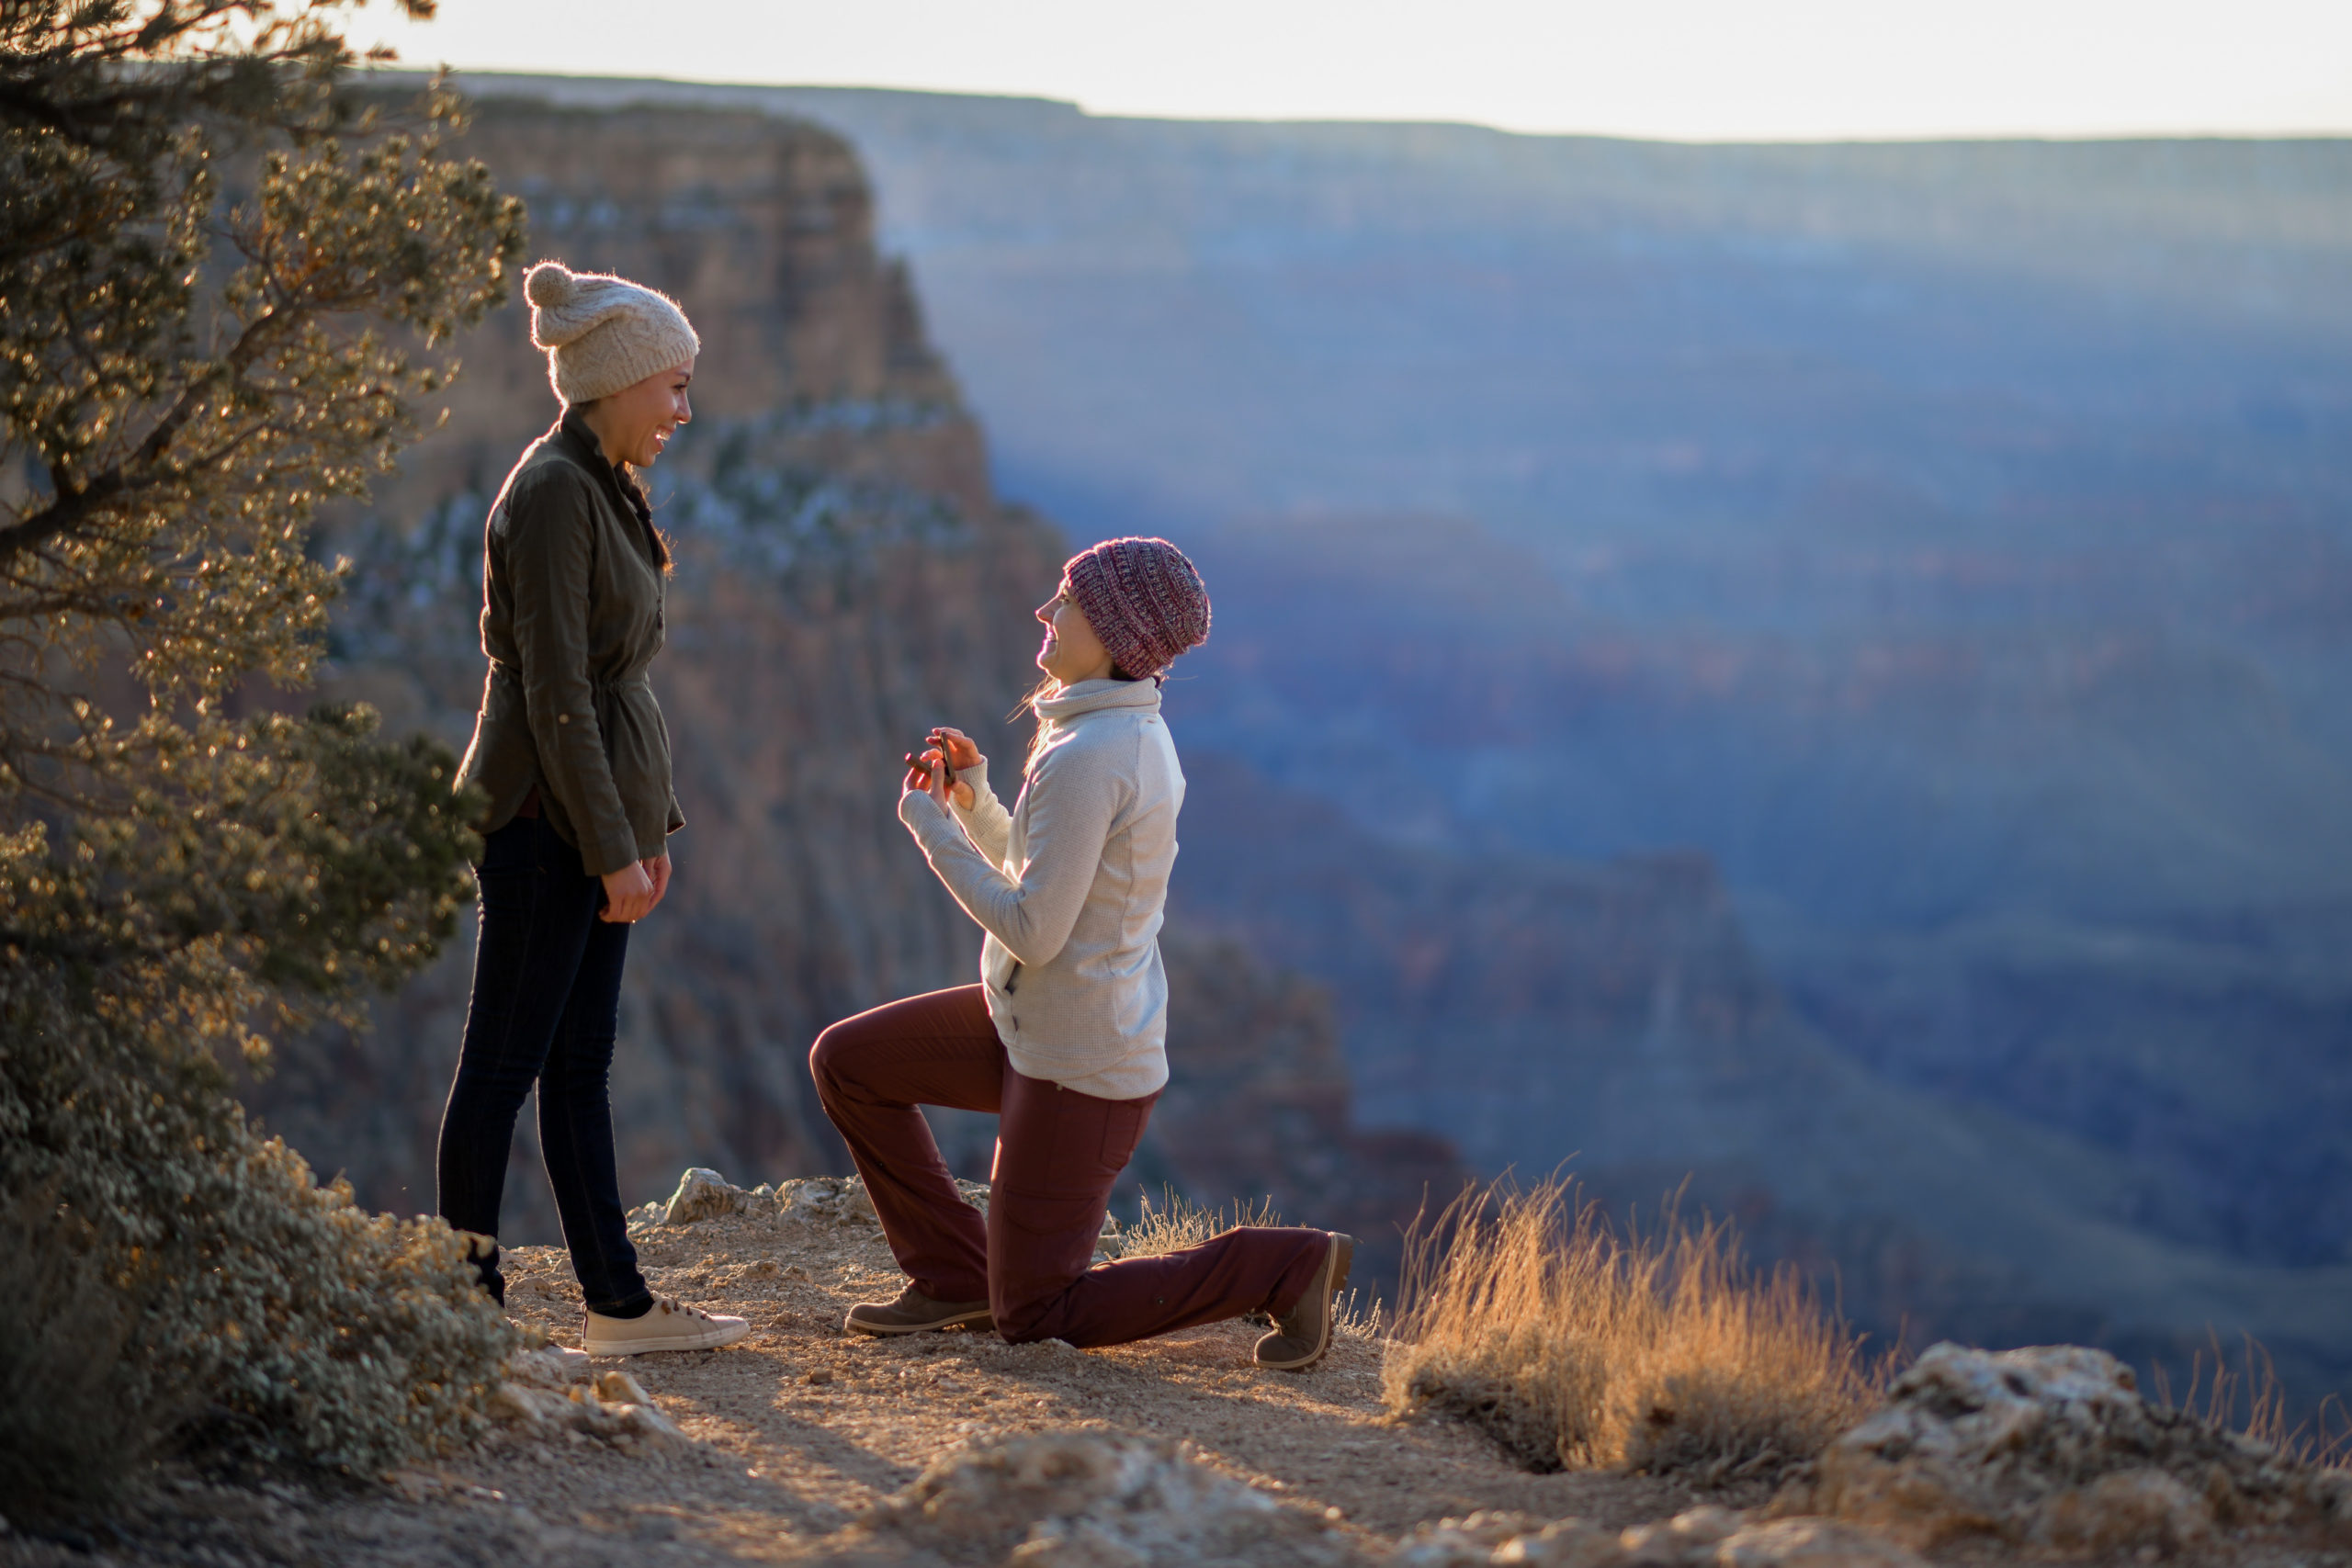 Lesbian Engagement at the South Rim